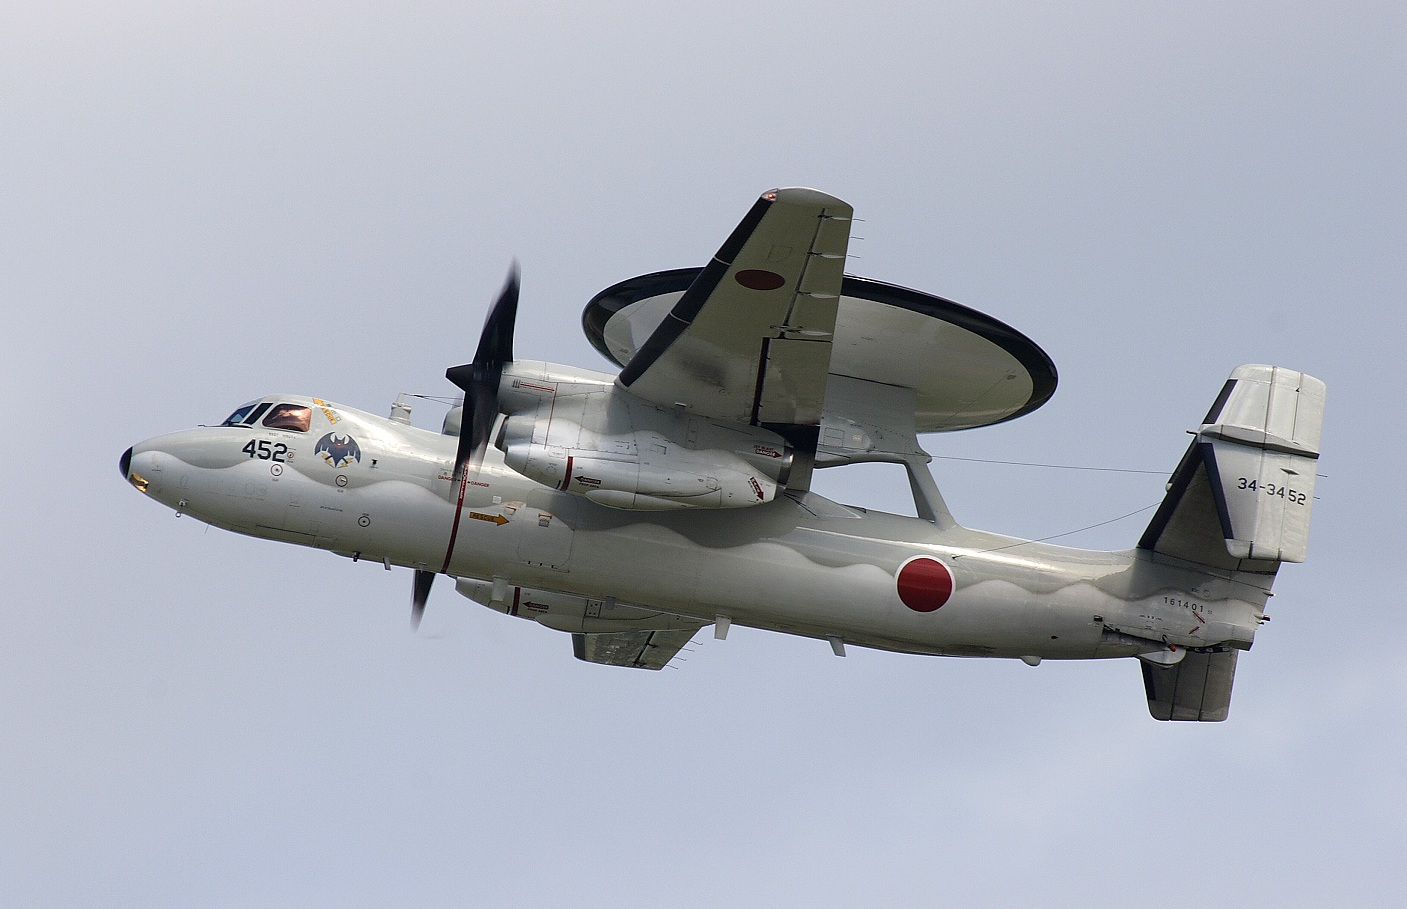 Japanese Air Force E2c